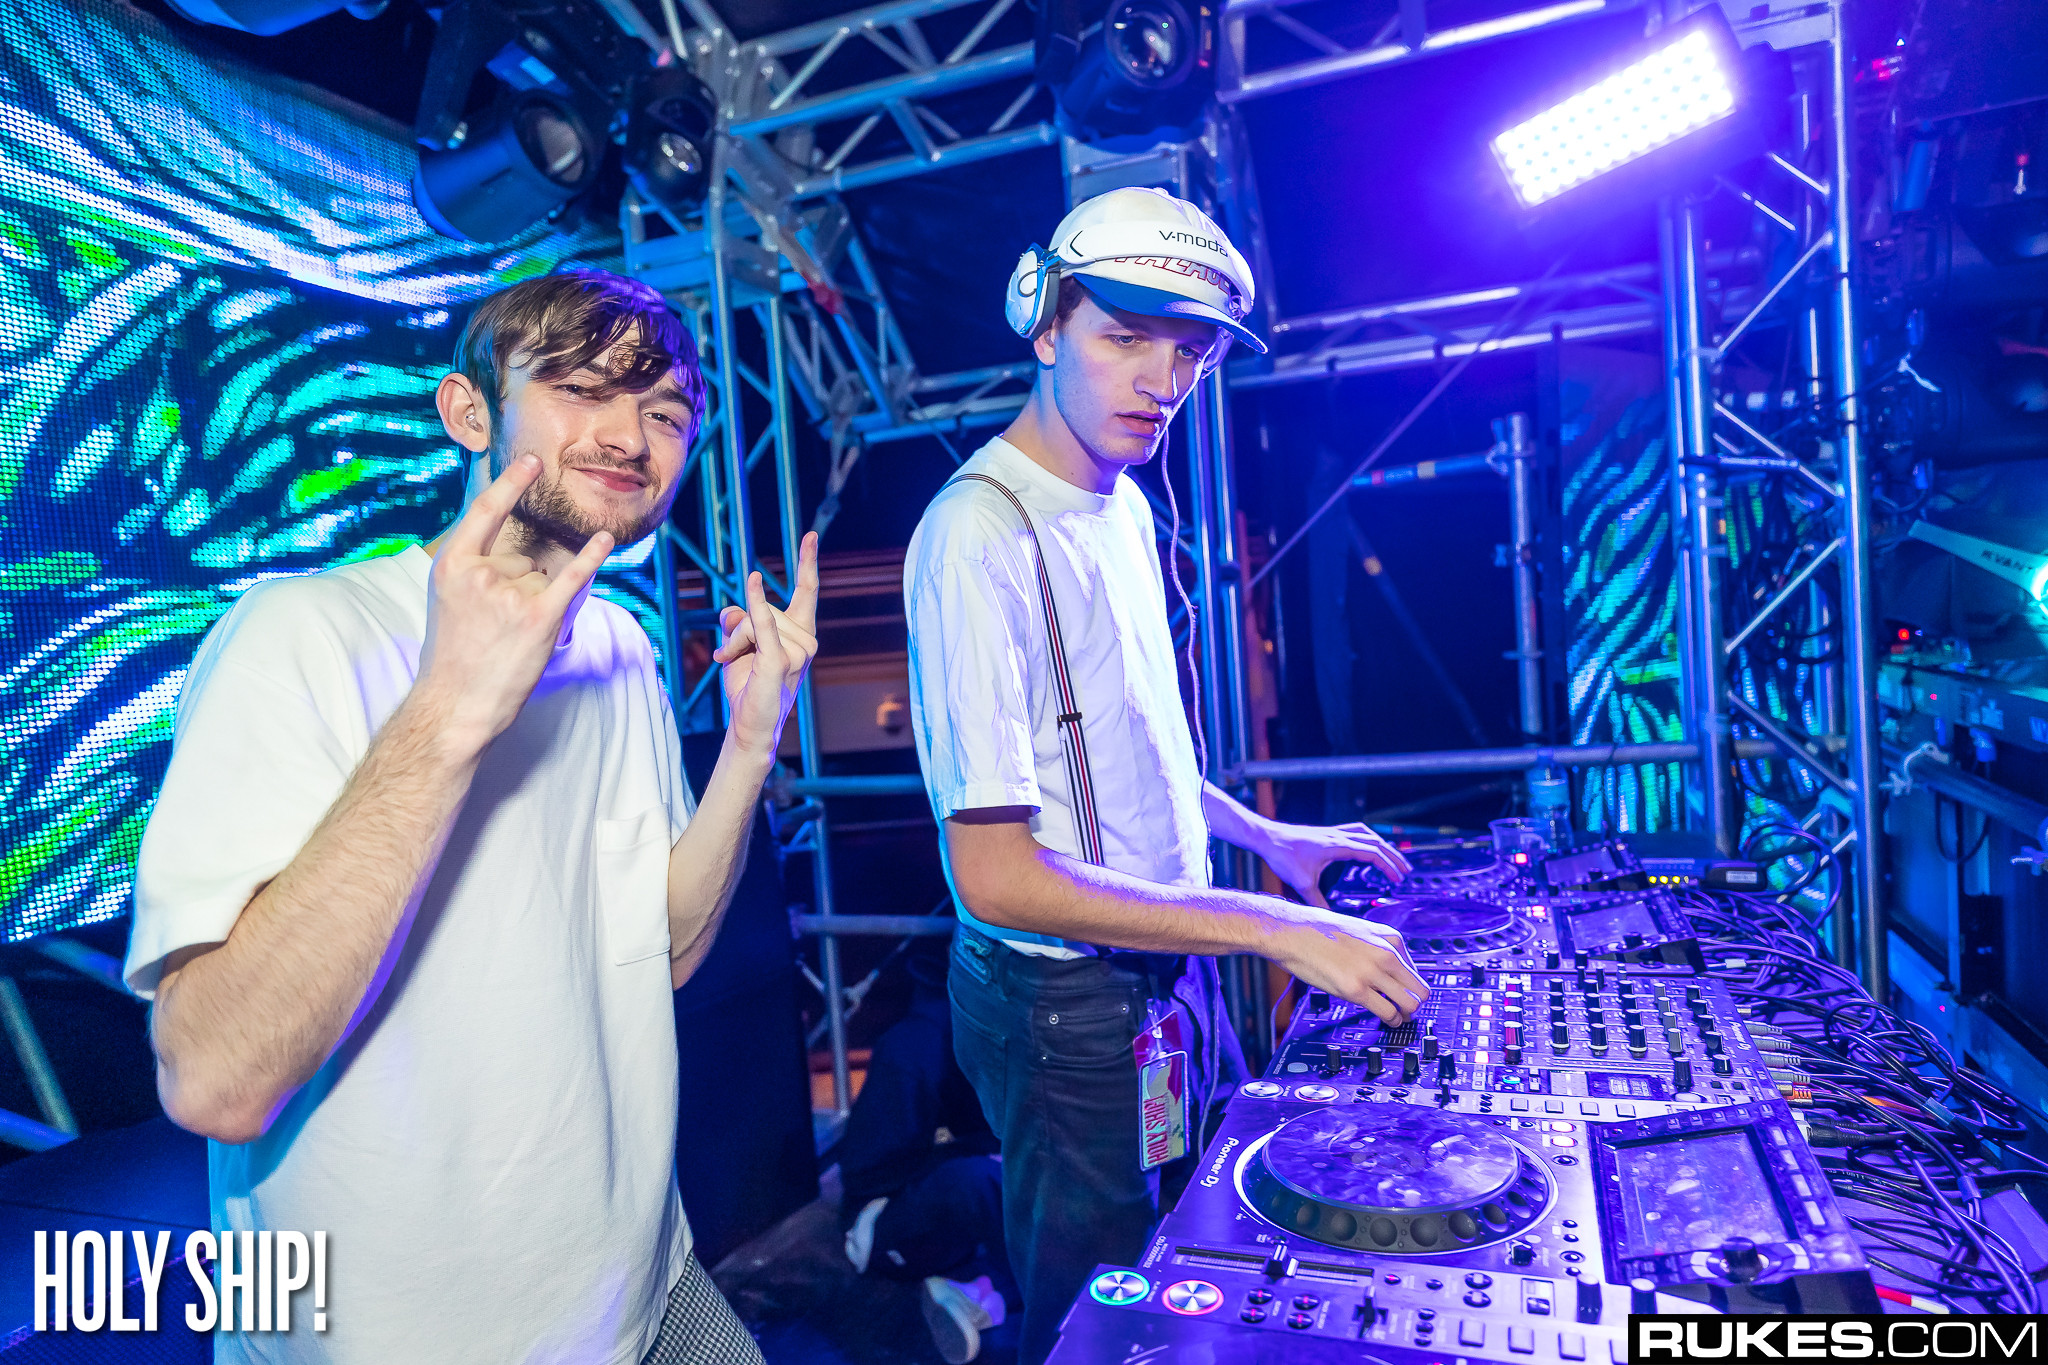 louis the child derpy holy ship 13 rukes.'